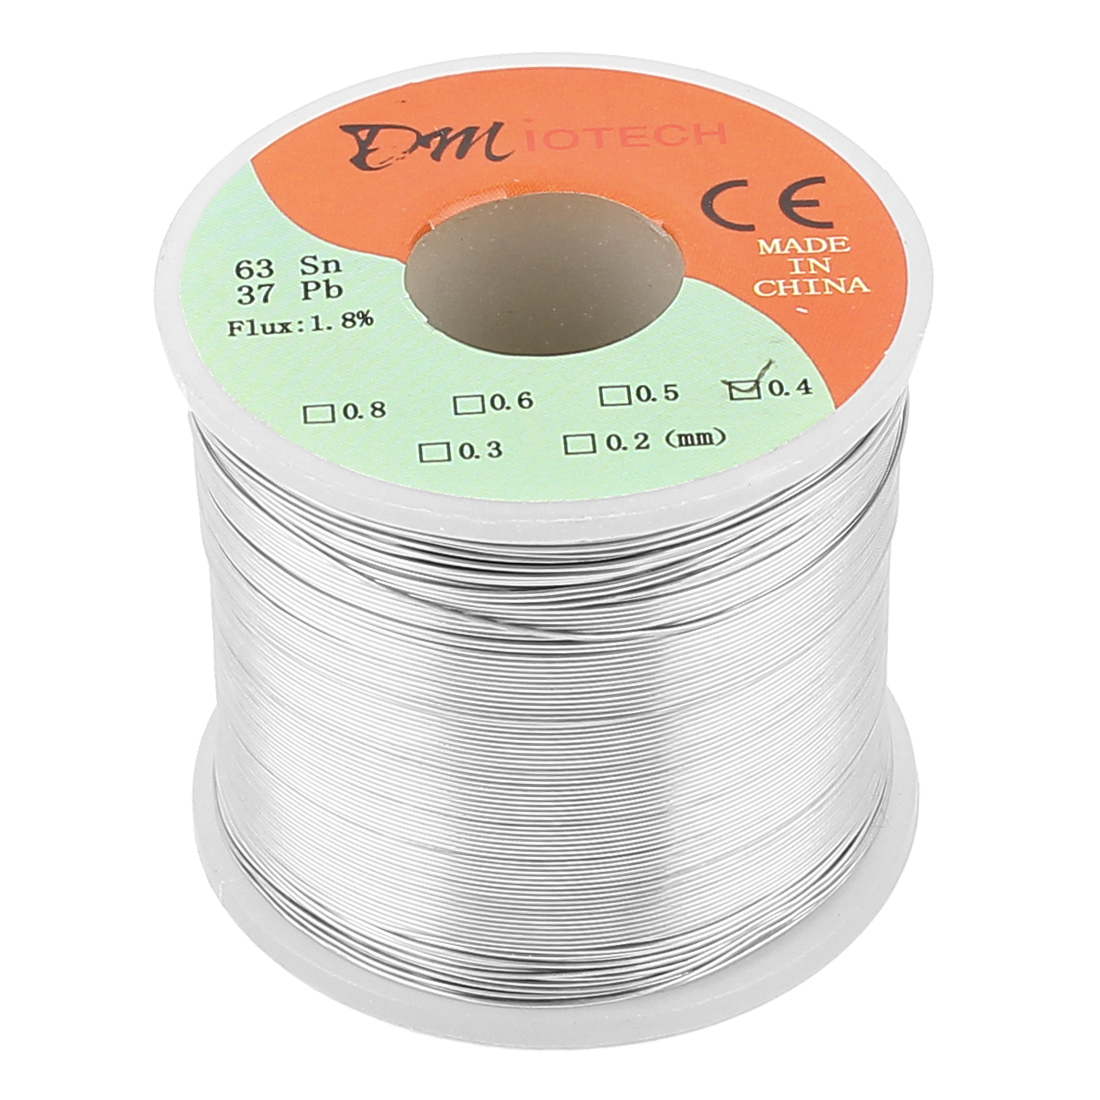 0.4mm Rosin Core Solder Tin Lead Solder Wire 63/37 for Electrical Soldering 400g